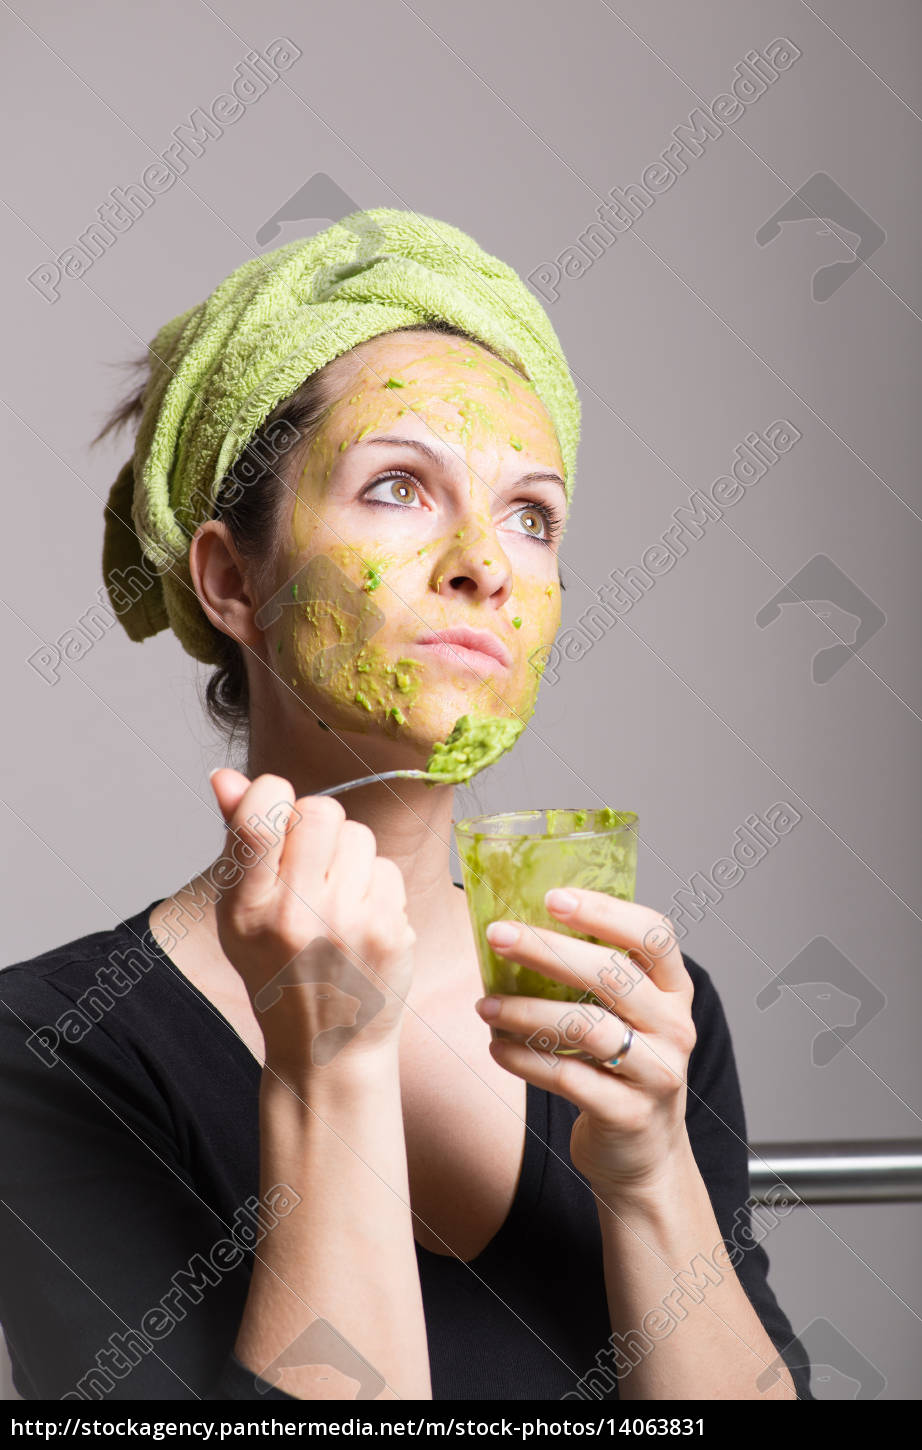 young, woman, with, an, avocado, facial - 14063831